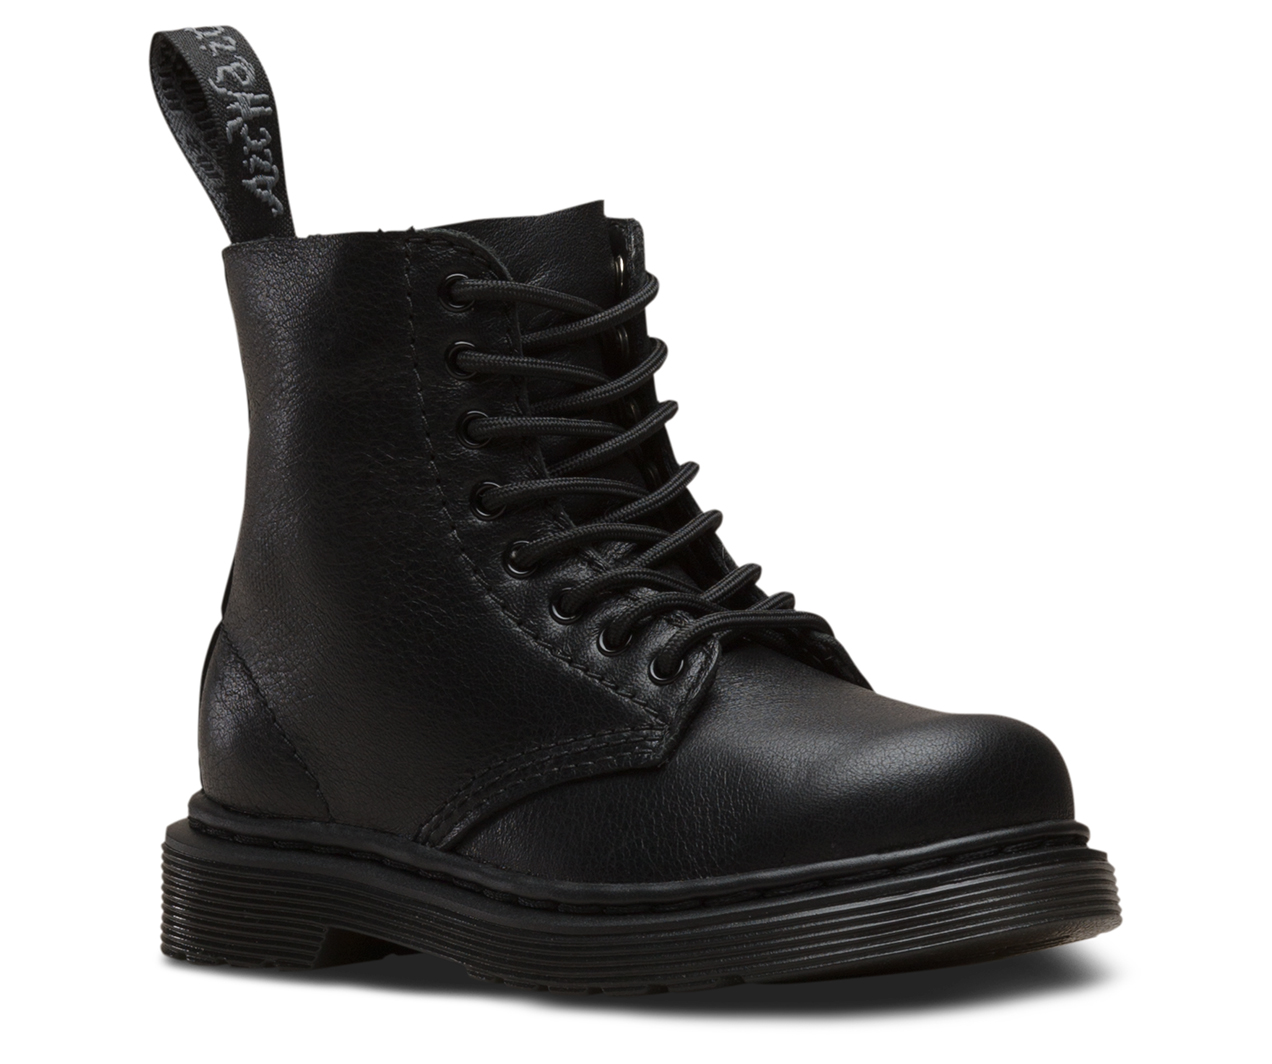 7b5c7c1623f3 TODDLER MONO 1460 PASCAL | Gifts for Kids | Dr. Martens Official